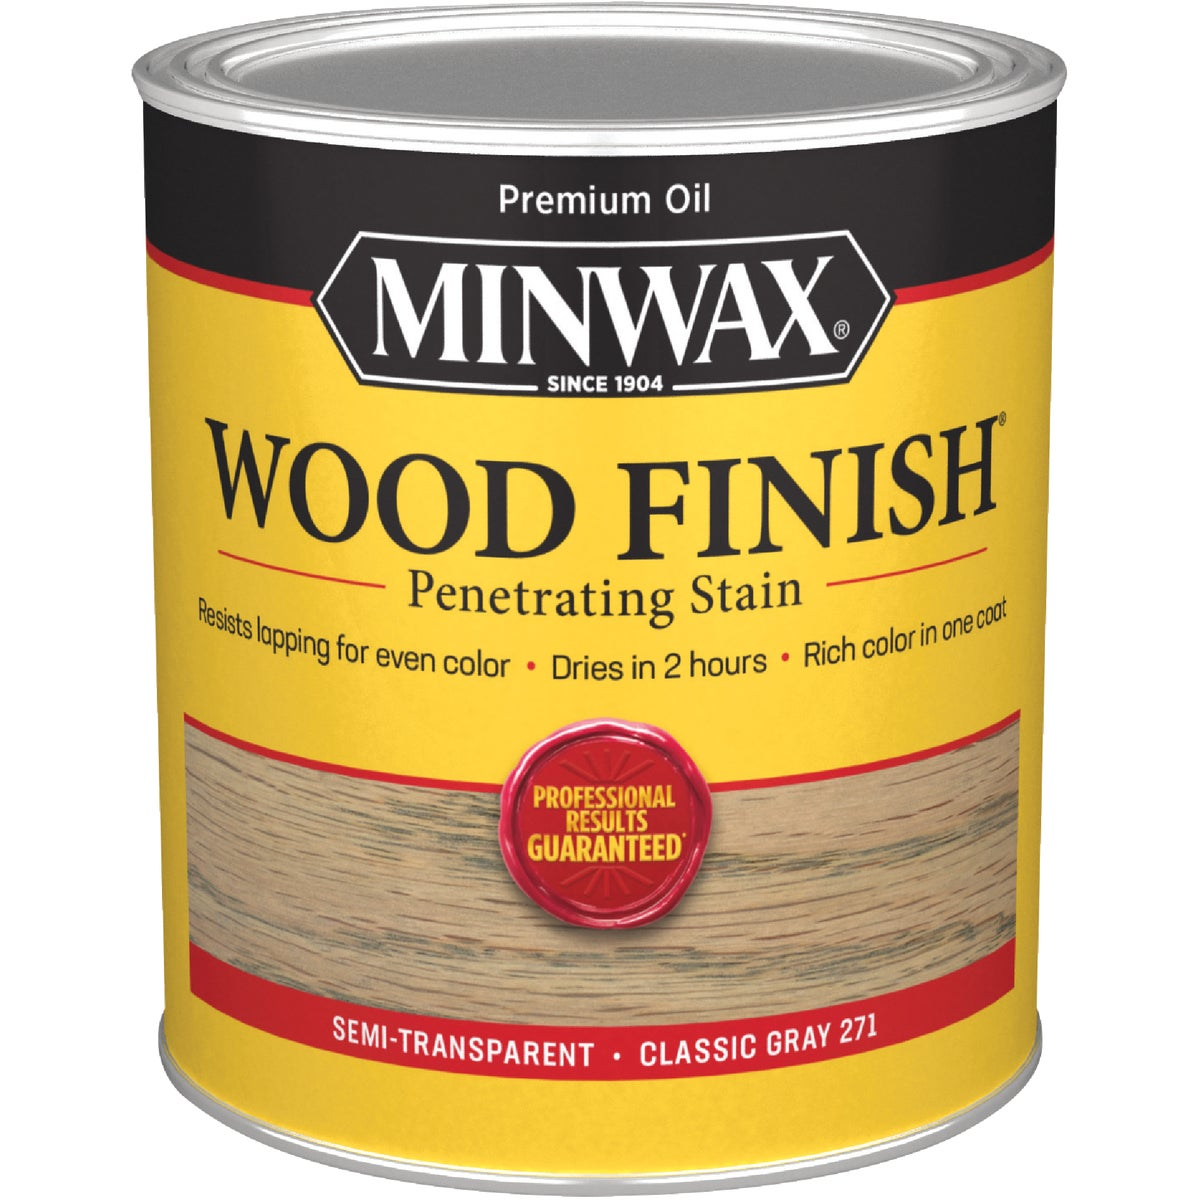 CLASSIC GRAY WOOD STAIN - 700484444 by Minwax Company